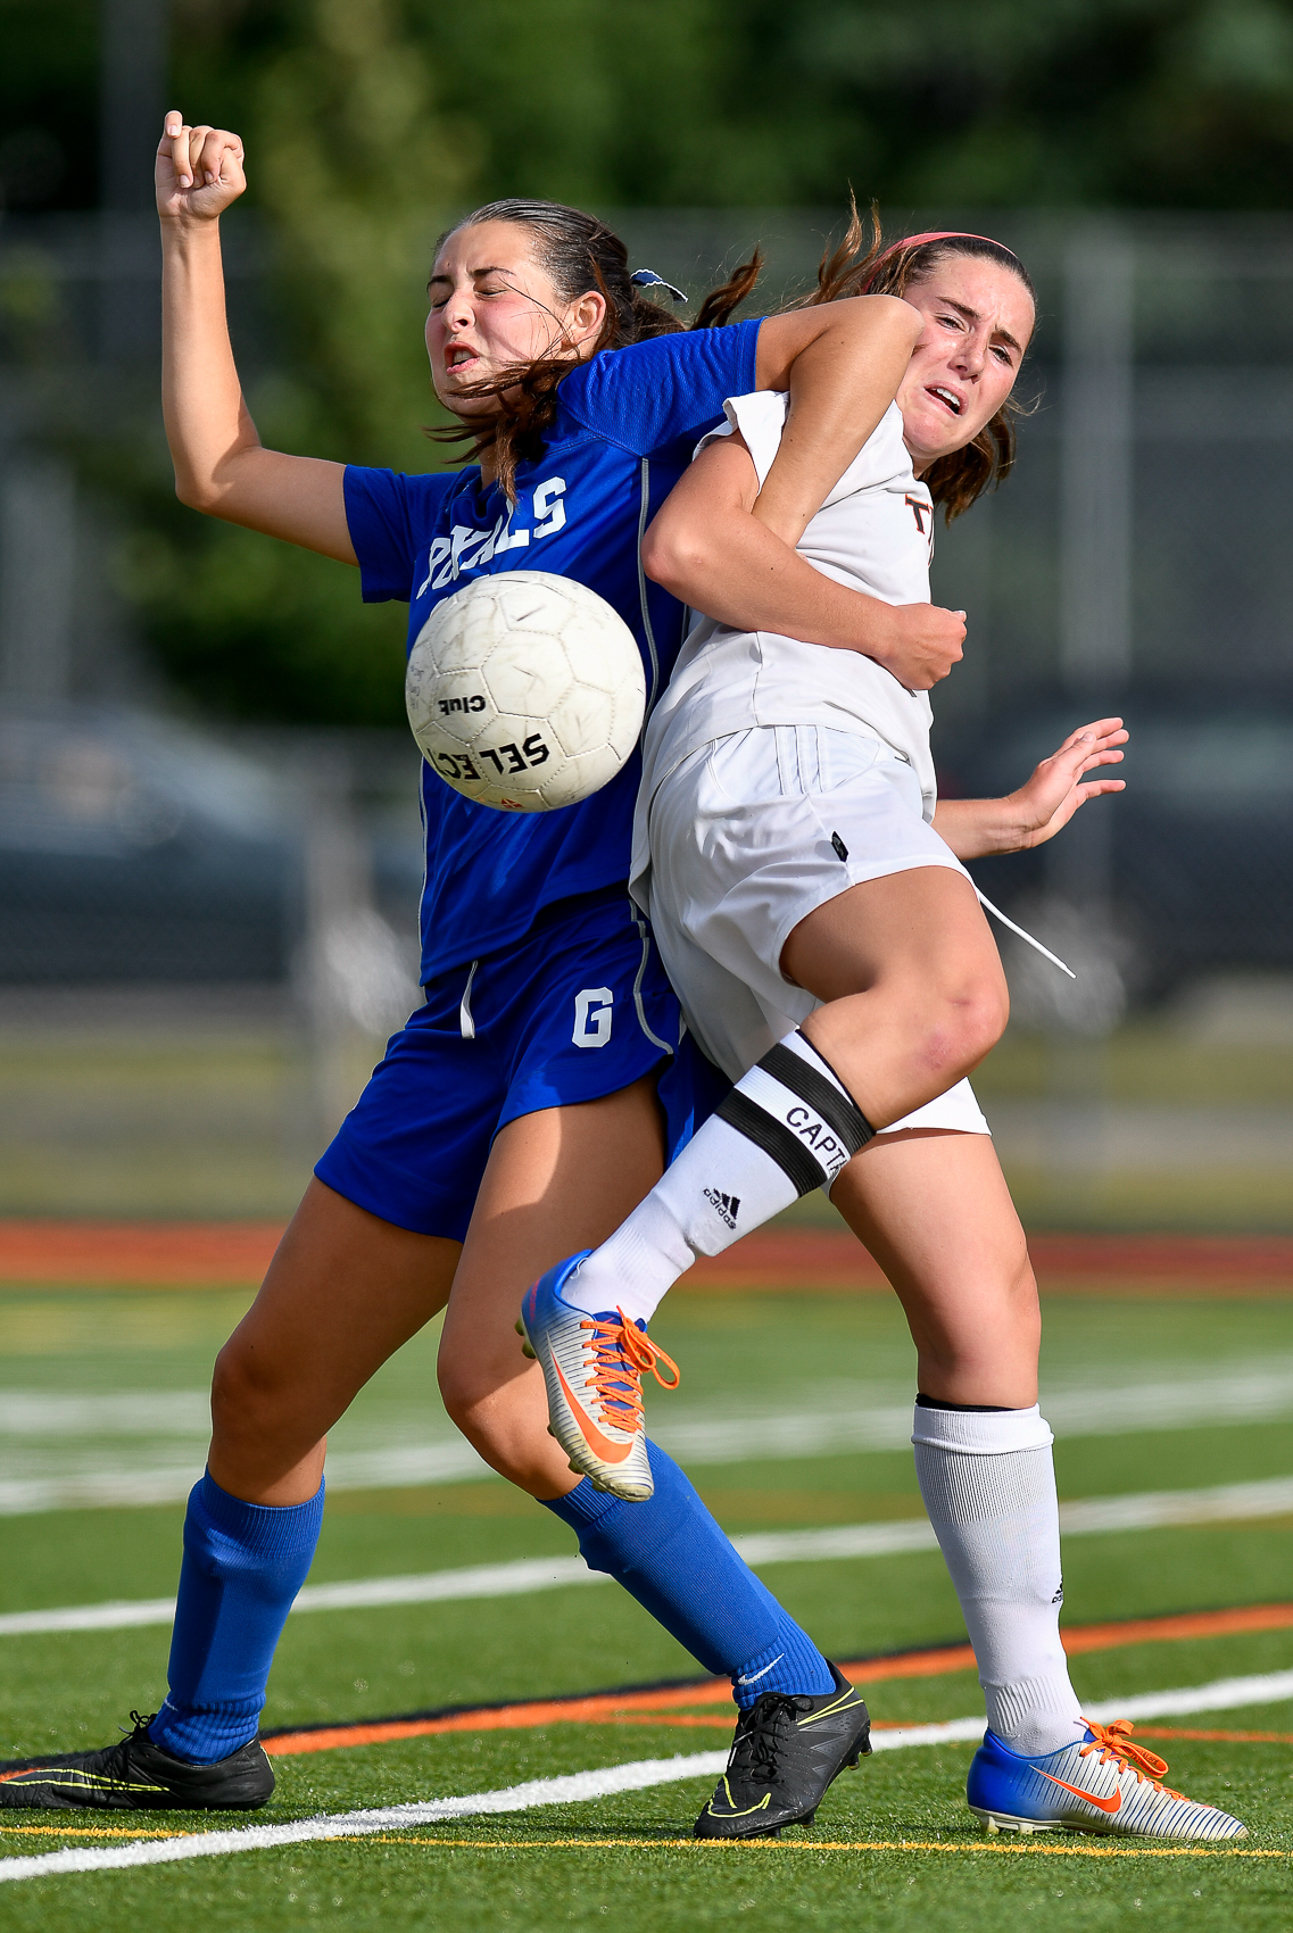 Casey Smith of Georgetown gets tangled up with Grace Evans of Ipswich as they both charge after a loose ball during their game at Ipswich High School, Friday, Sept. 8, 2017. [Wicked Local Staff Photo / David Sokol]